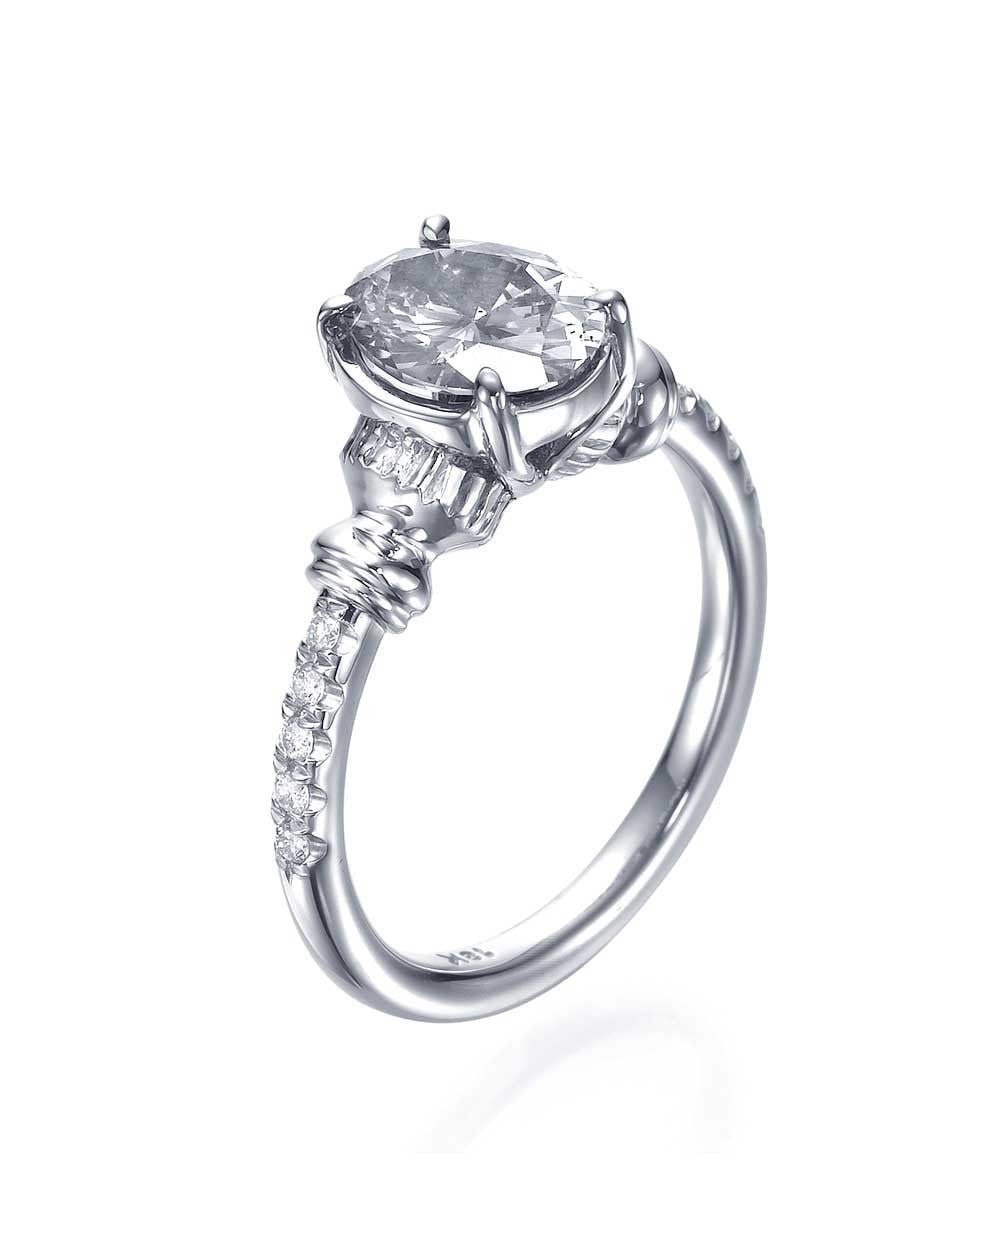 chelsea pinterest platinum on images jeandousset wedding carat cut with in diamond best set ring rings a oval engagement